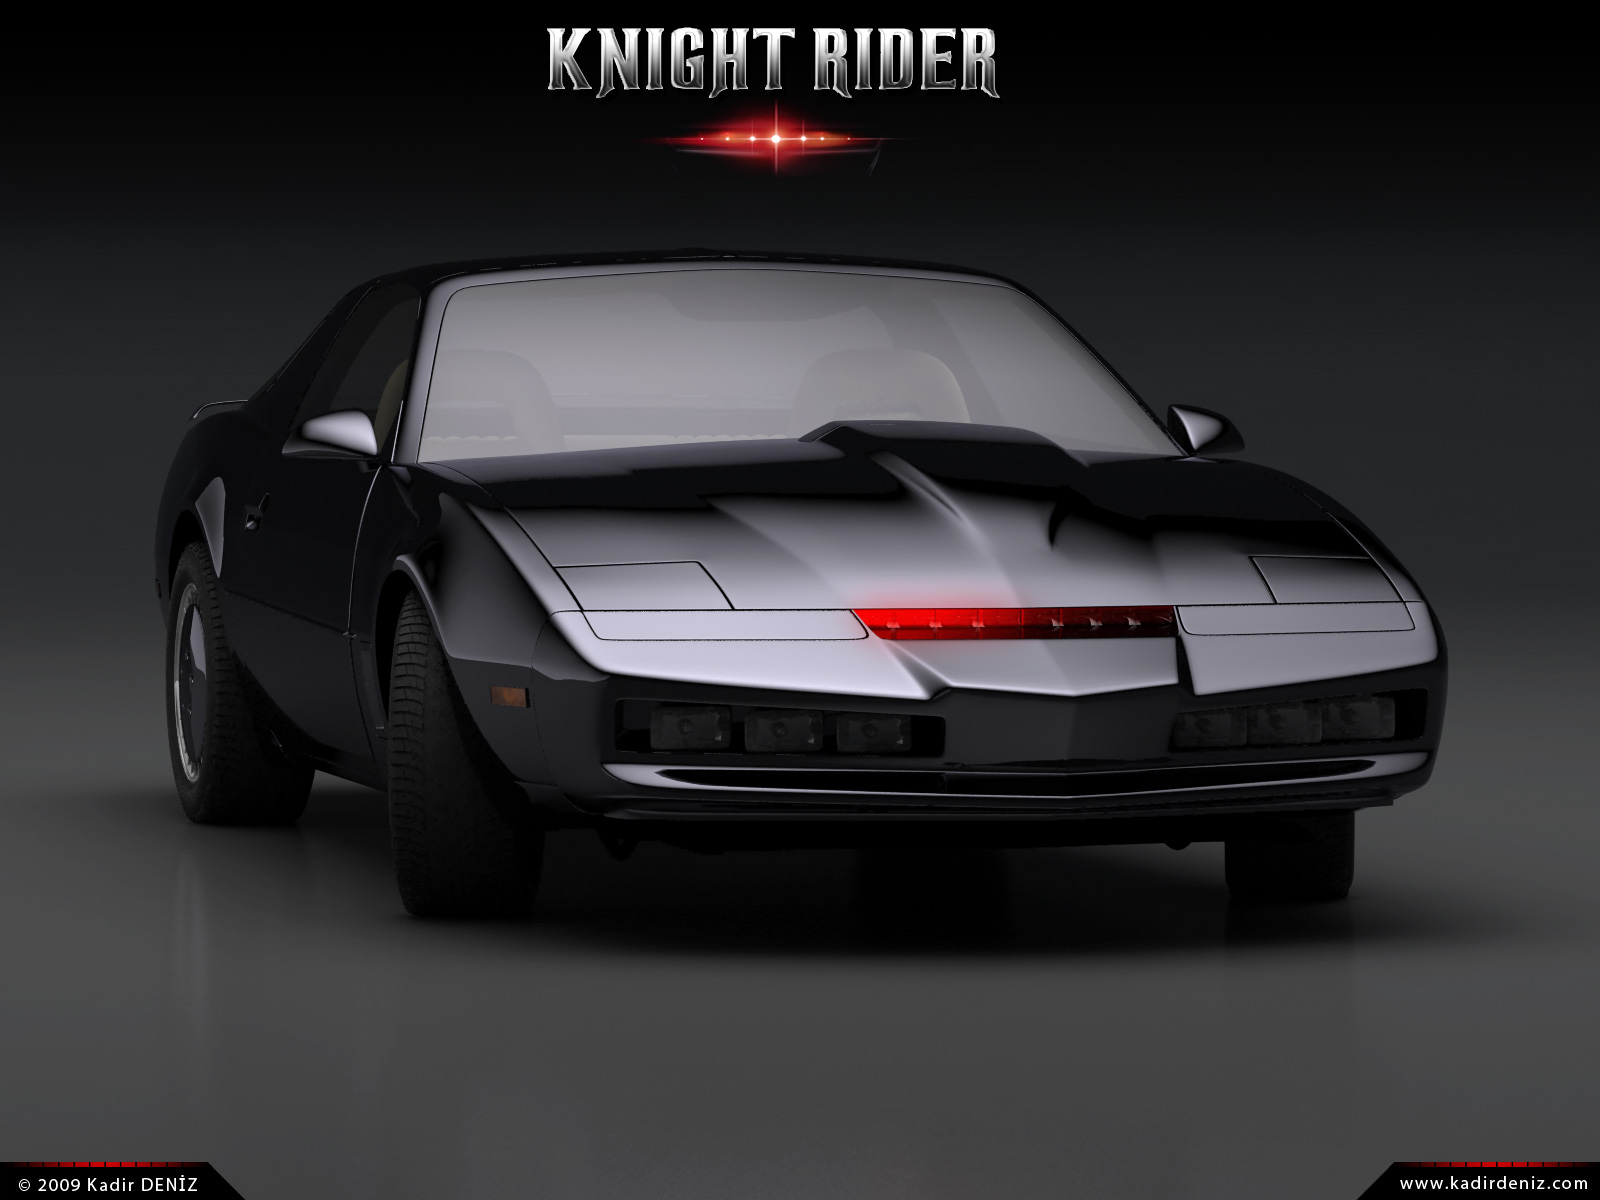 Image gallery for new knight rider wallpapers 1600x1200